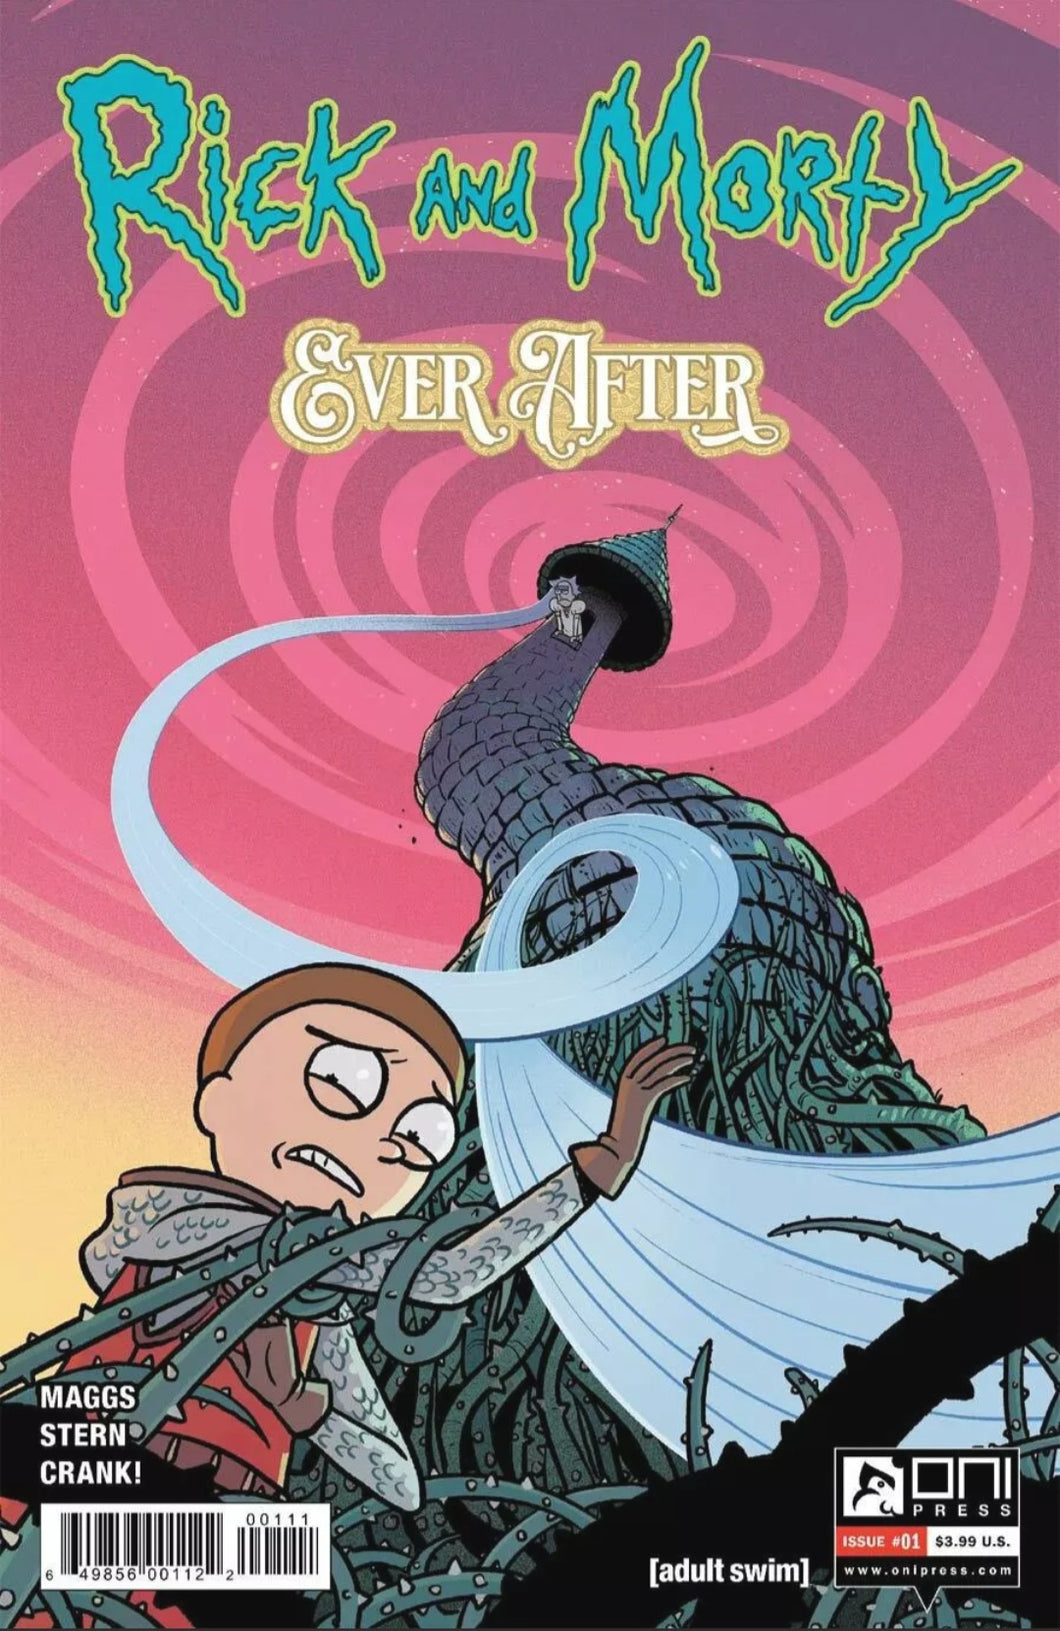 🔥 RICK AND MORTY EVER AFTER #1  CVR A ONI PRESS